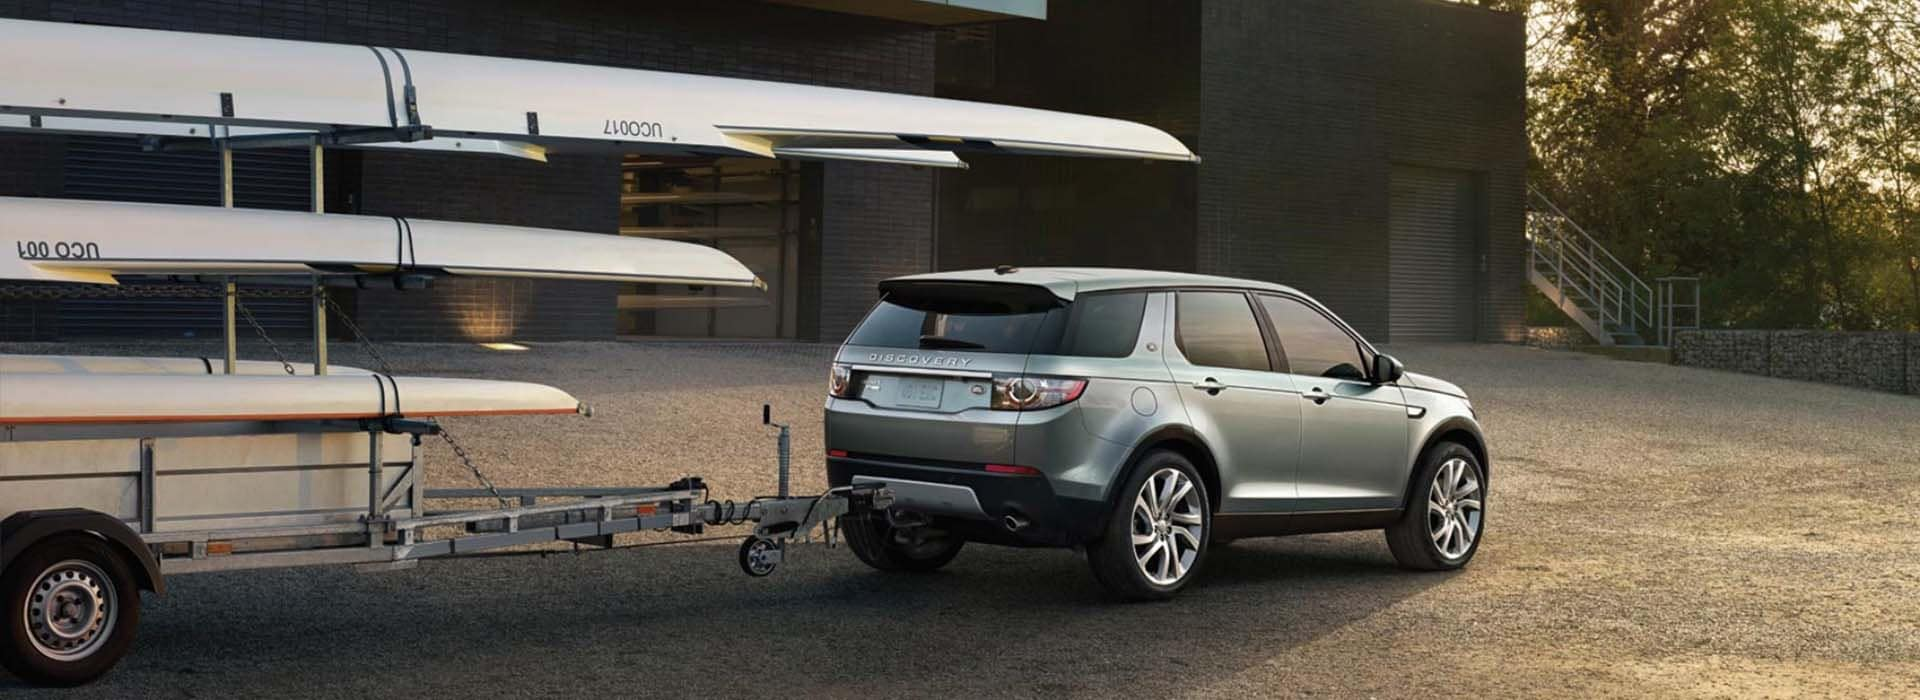 2018 Land Rover Discovery Sport Towing a Trailer